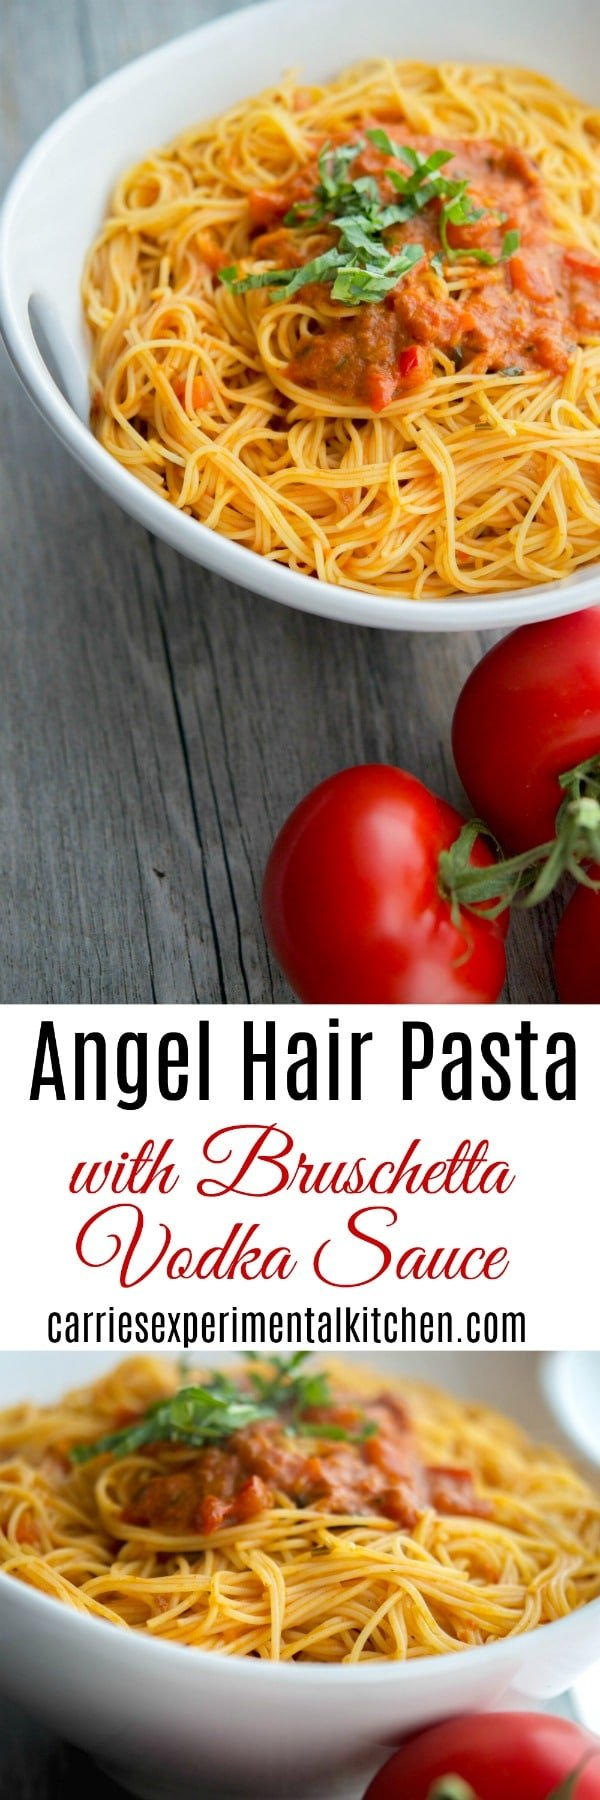 This recipe for Angel Hair Pasta with Bruschetta Vodka Sauce is so simple to make. Make it fresh, utilize leftovers or take some shortcuts and use already prepared products for a quick and delicious weeknight meal the entire family will love. #pasta #tomatoes #italianfood